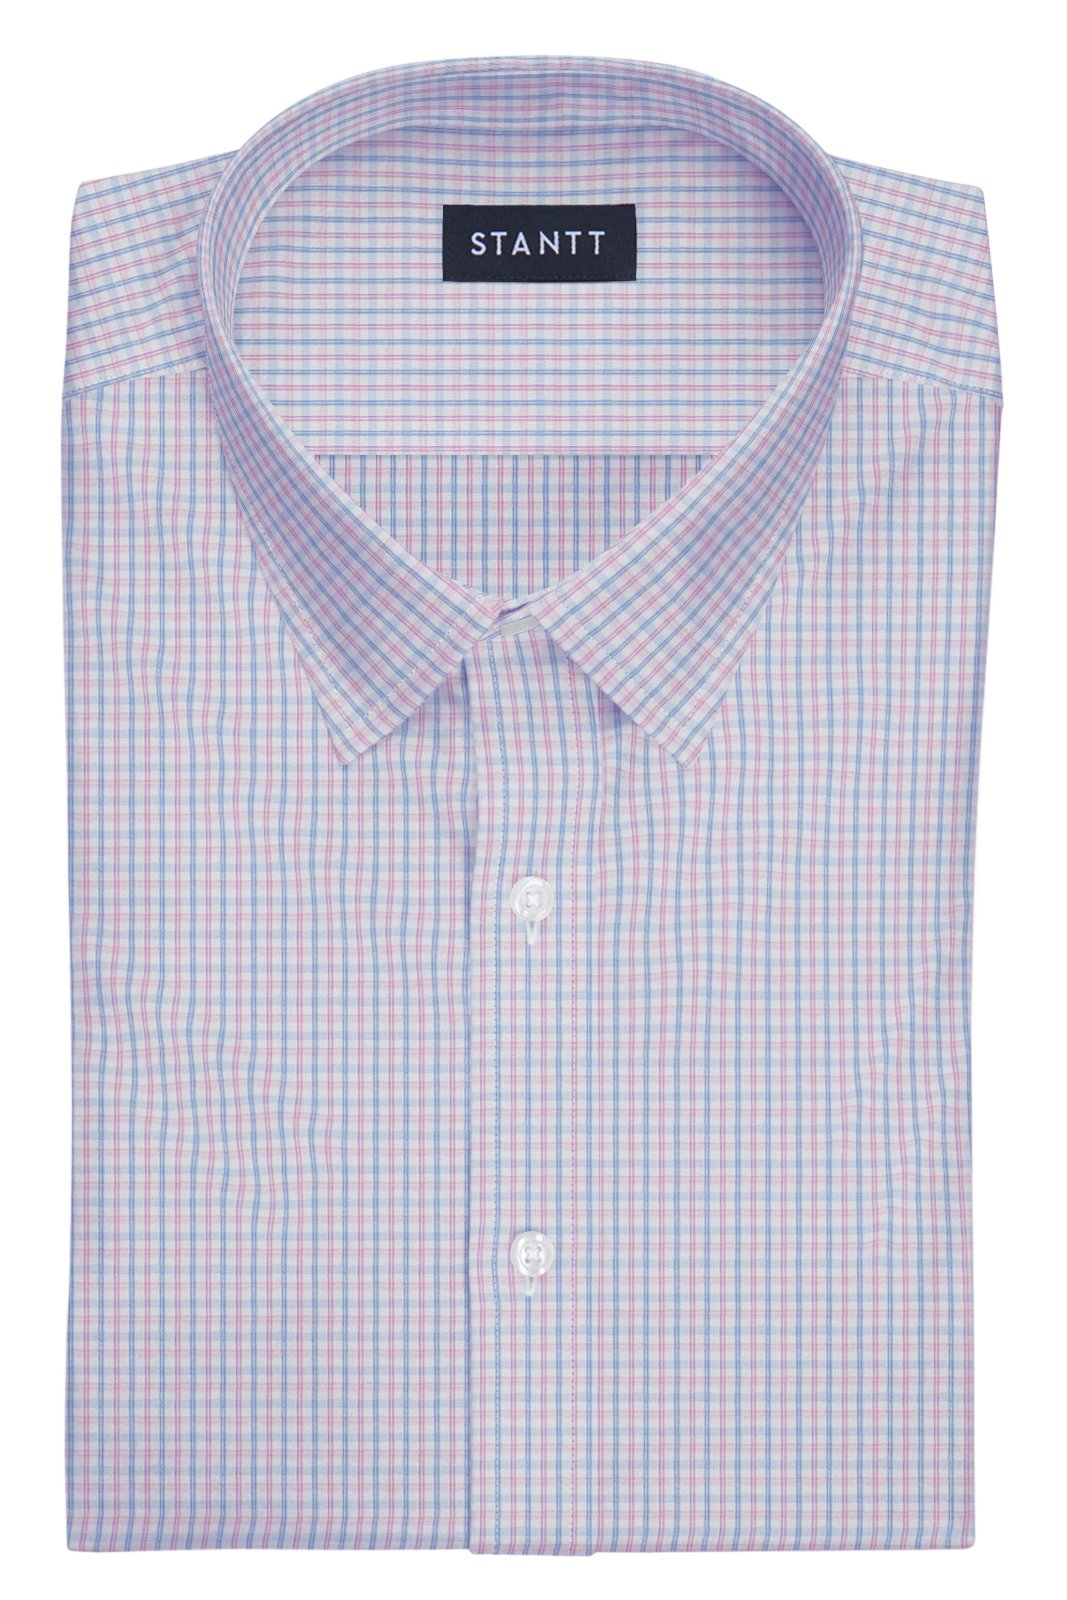 Wrinkle-Resistant Light Blue and Pink Bordered Tattersall: Semi-Spread Collar, French Cuff